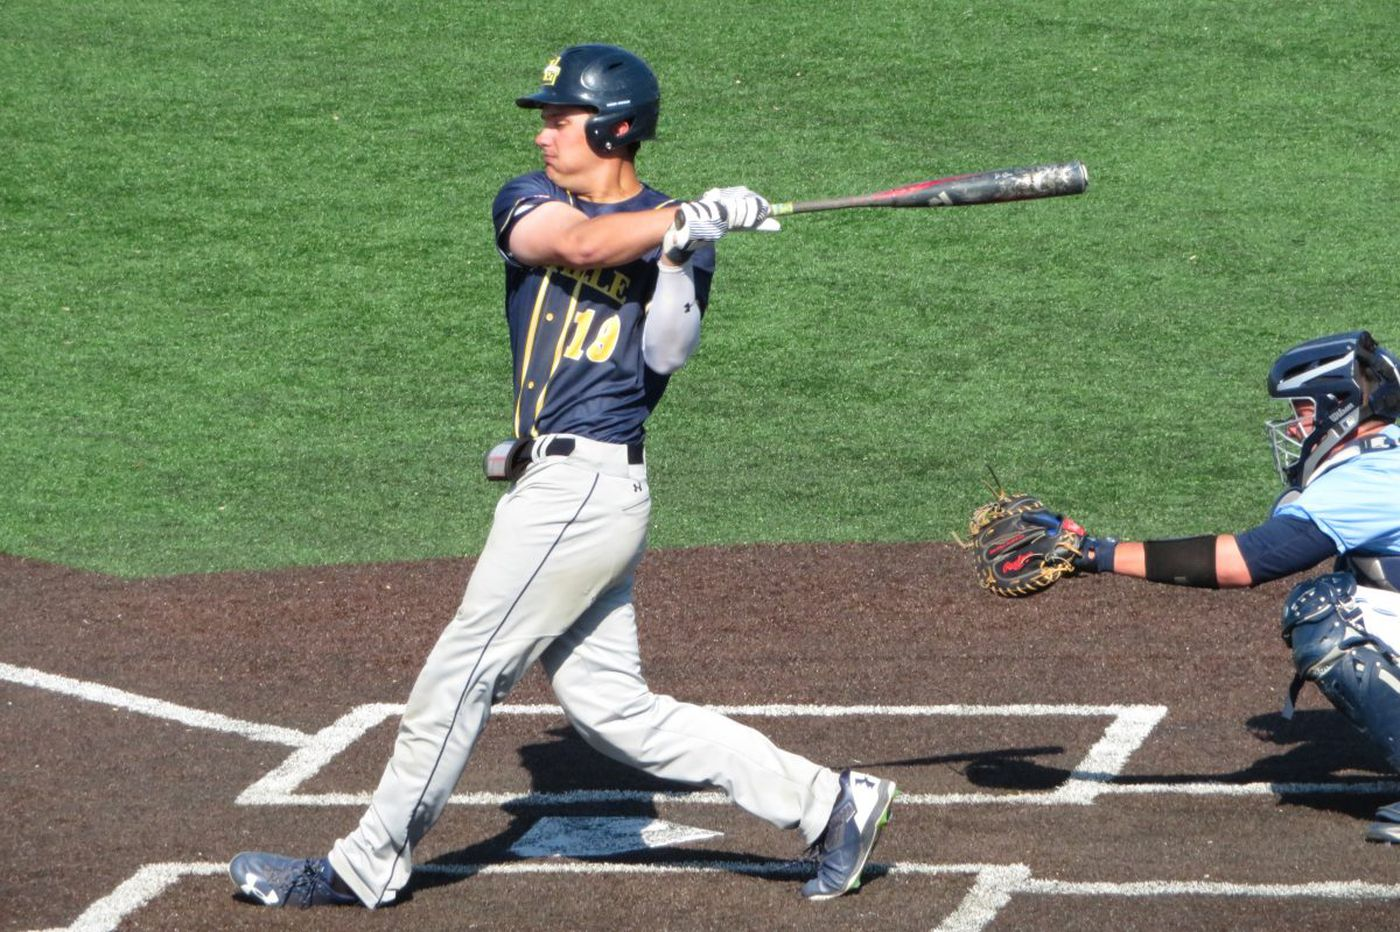 La Salle's Ben Faso is hitting his baseball stride after a rough start